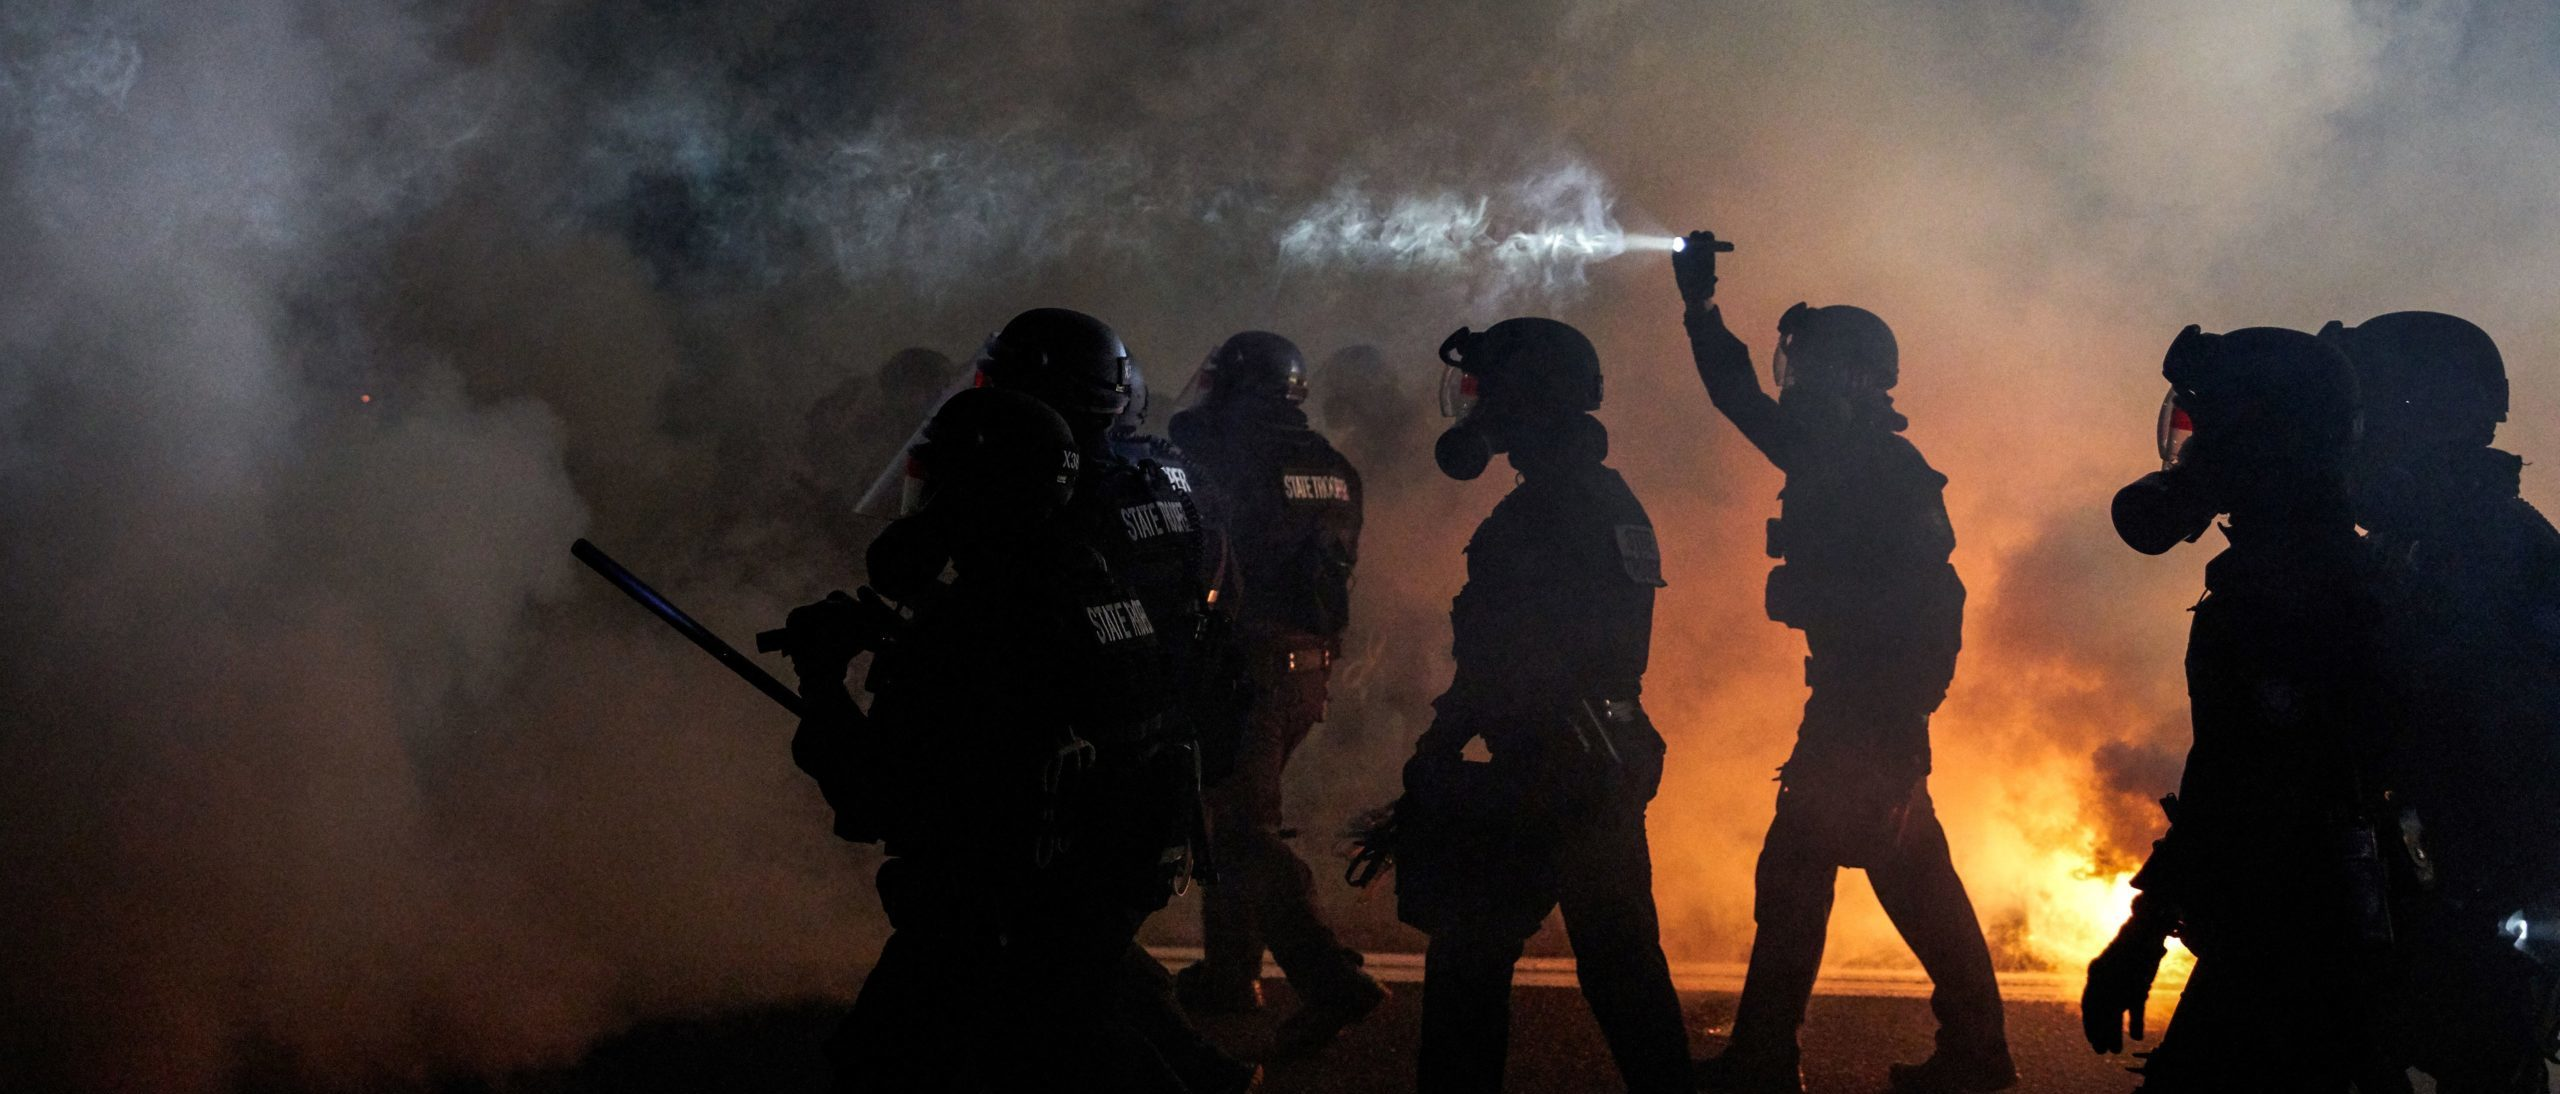 Oregon Police wearing anti-riot gear march towards protesters through tear gas smoke during the 100th day and night of protests against racism and police brutality in Portland, Oregon, on September 5, 2020. (Photo by ALLISON DINNER/AFP via Getty Images)